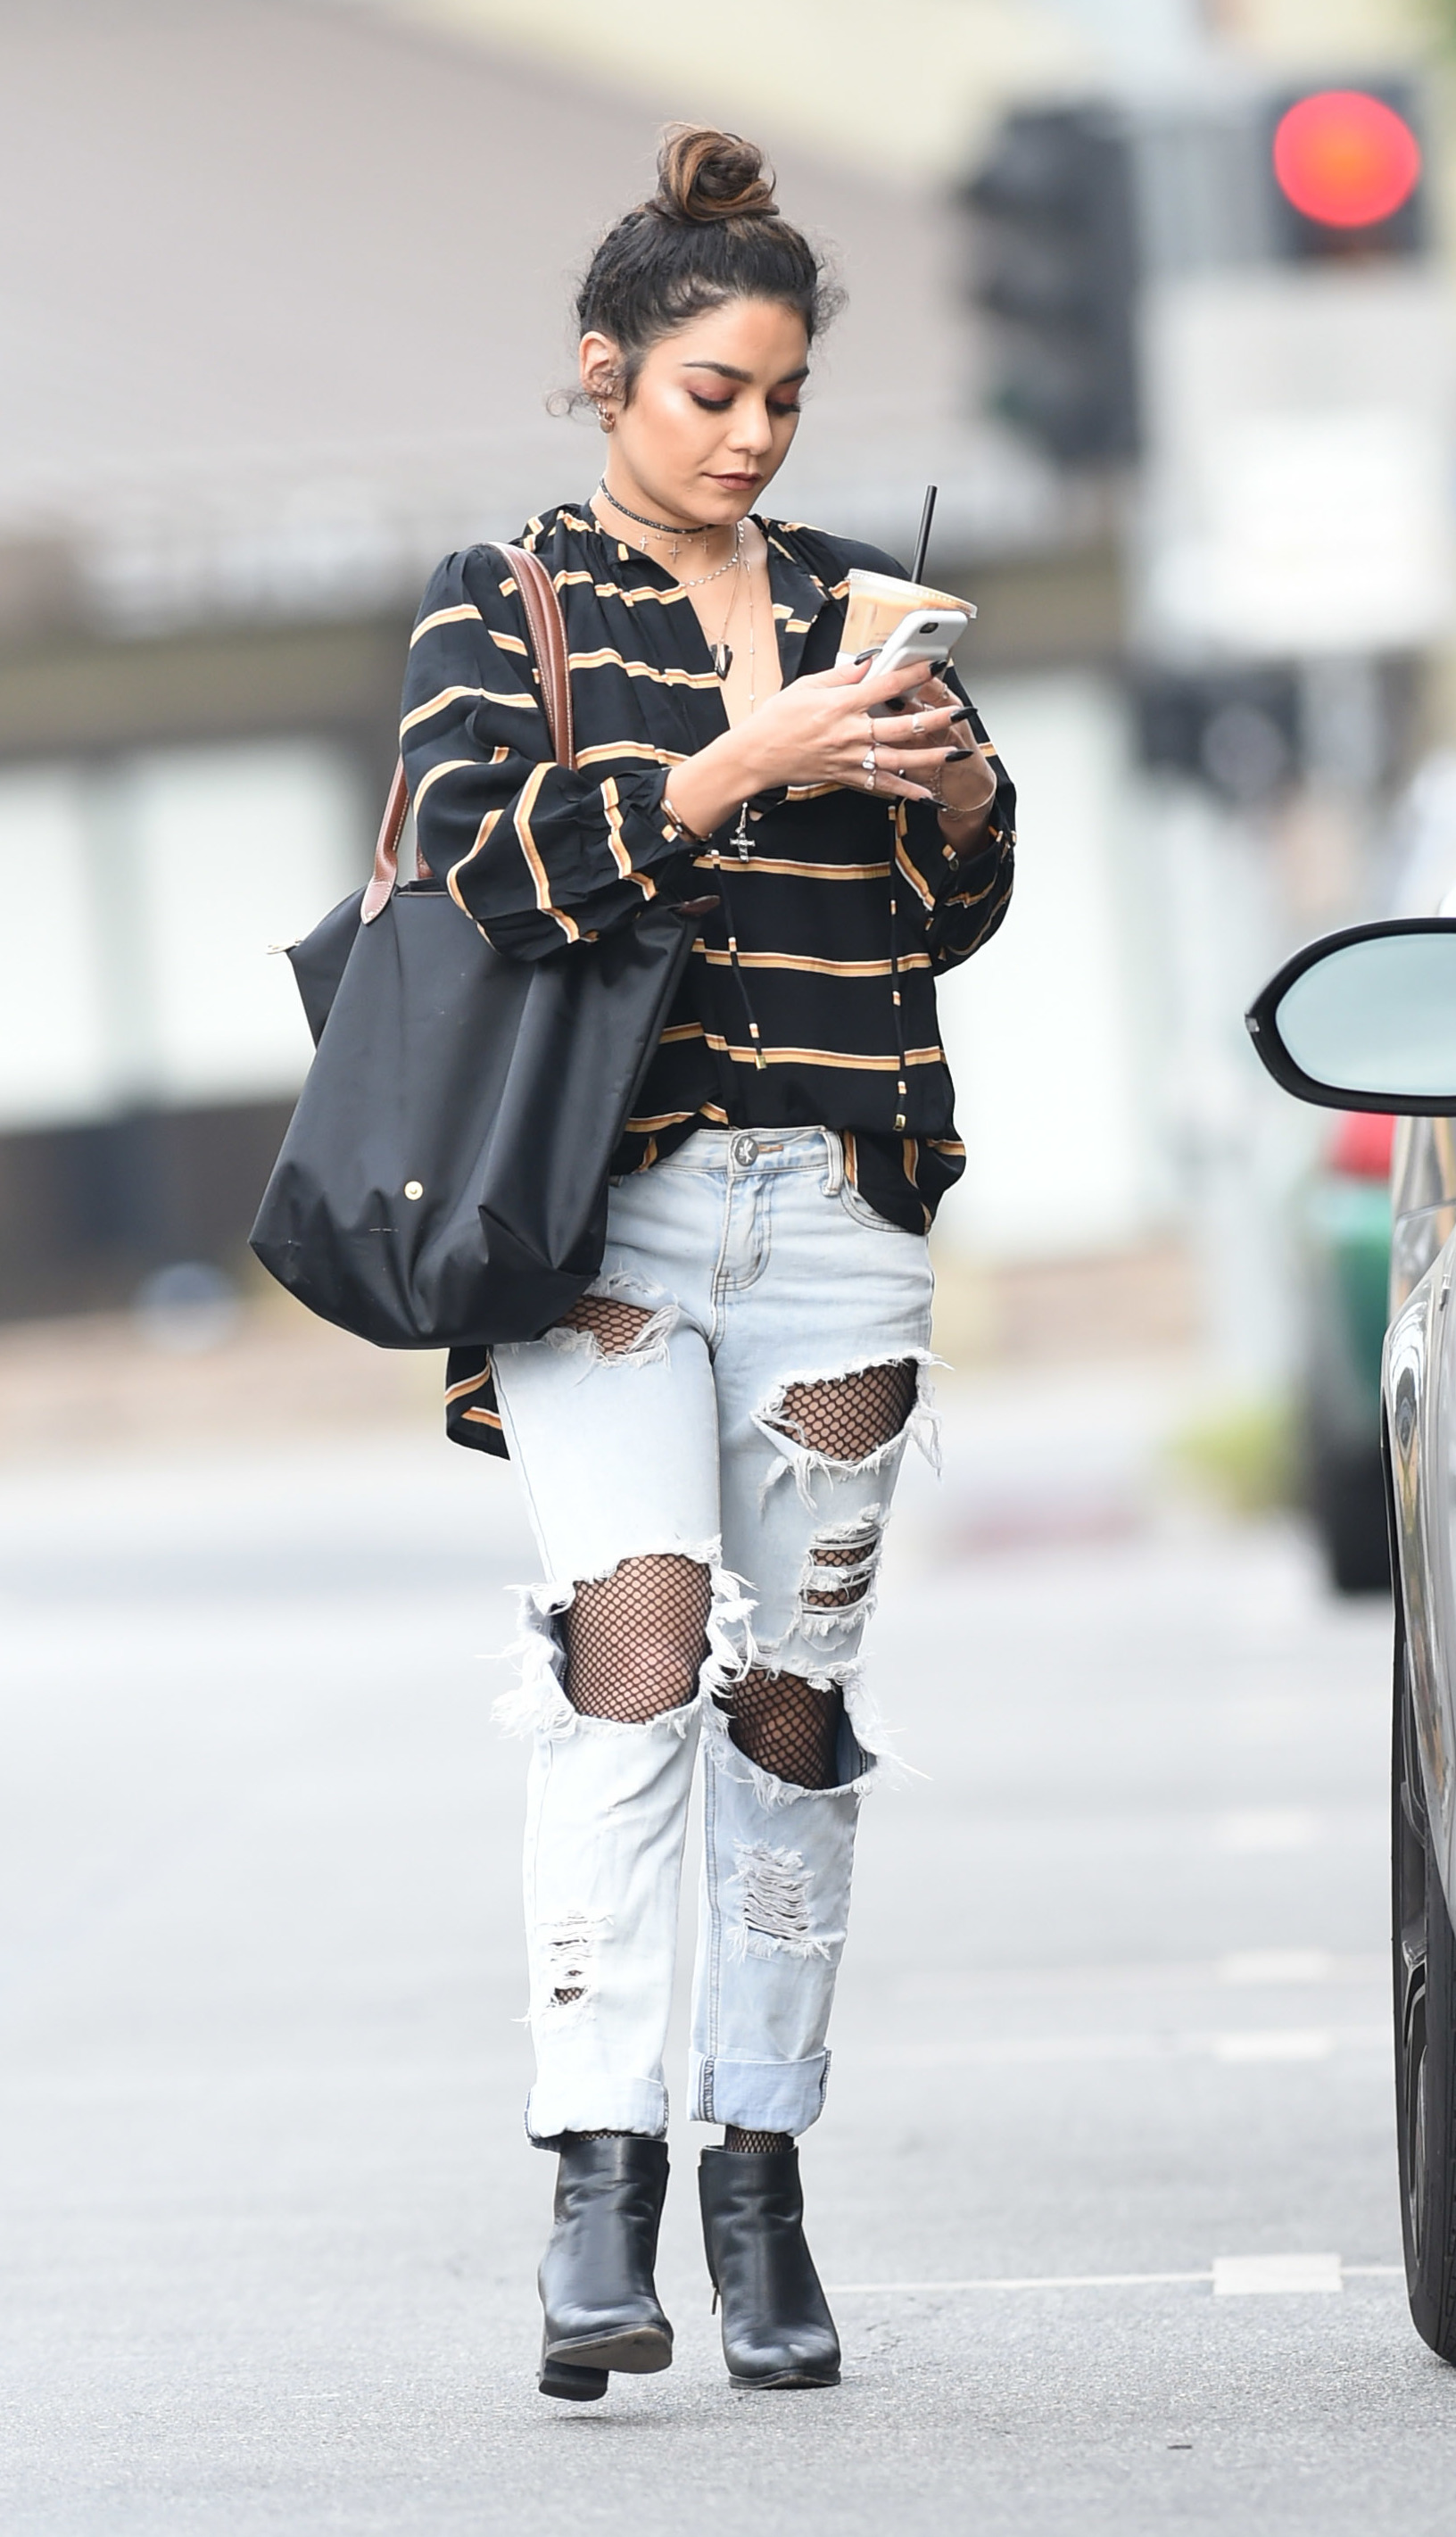 Vanessa Hudgens in Ripped Jeans out in LA